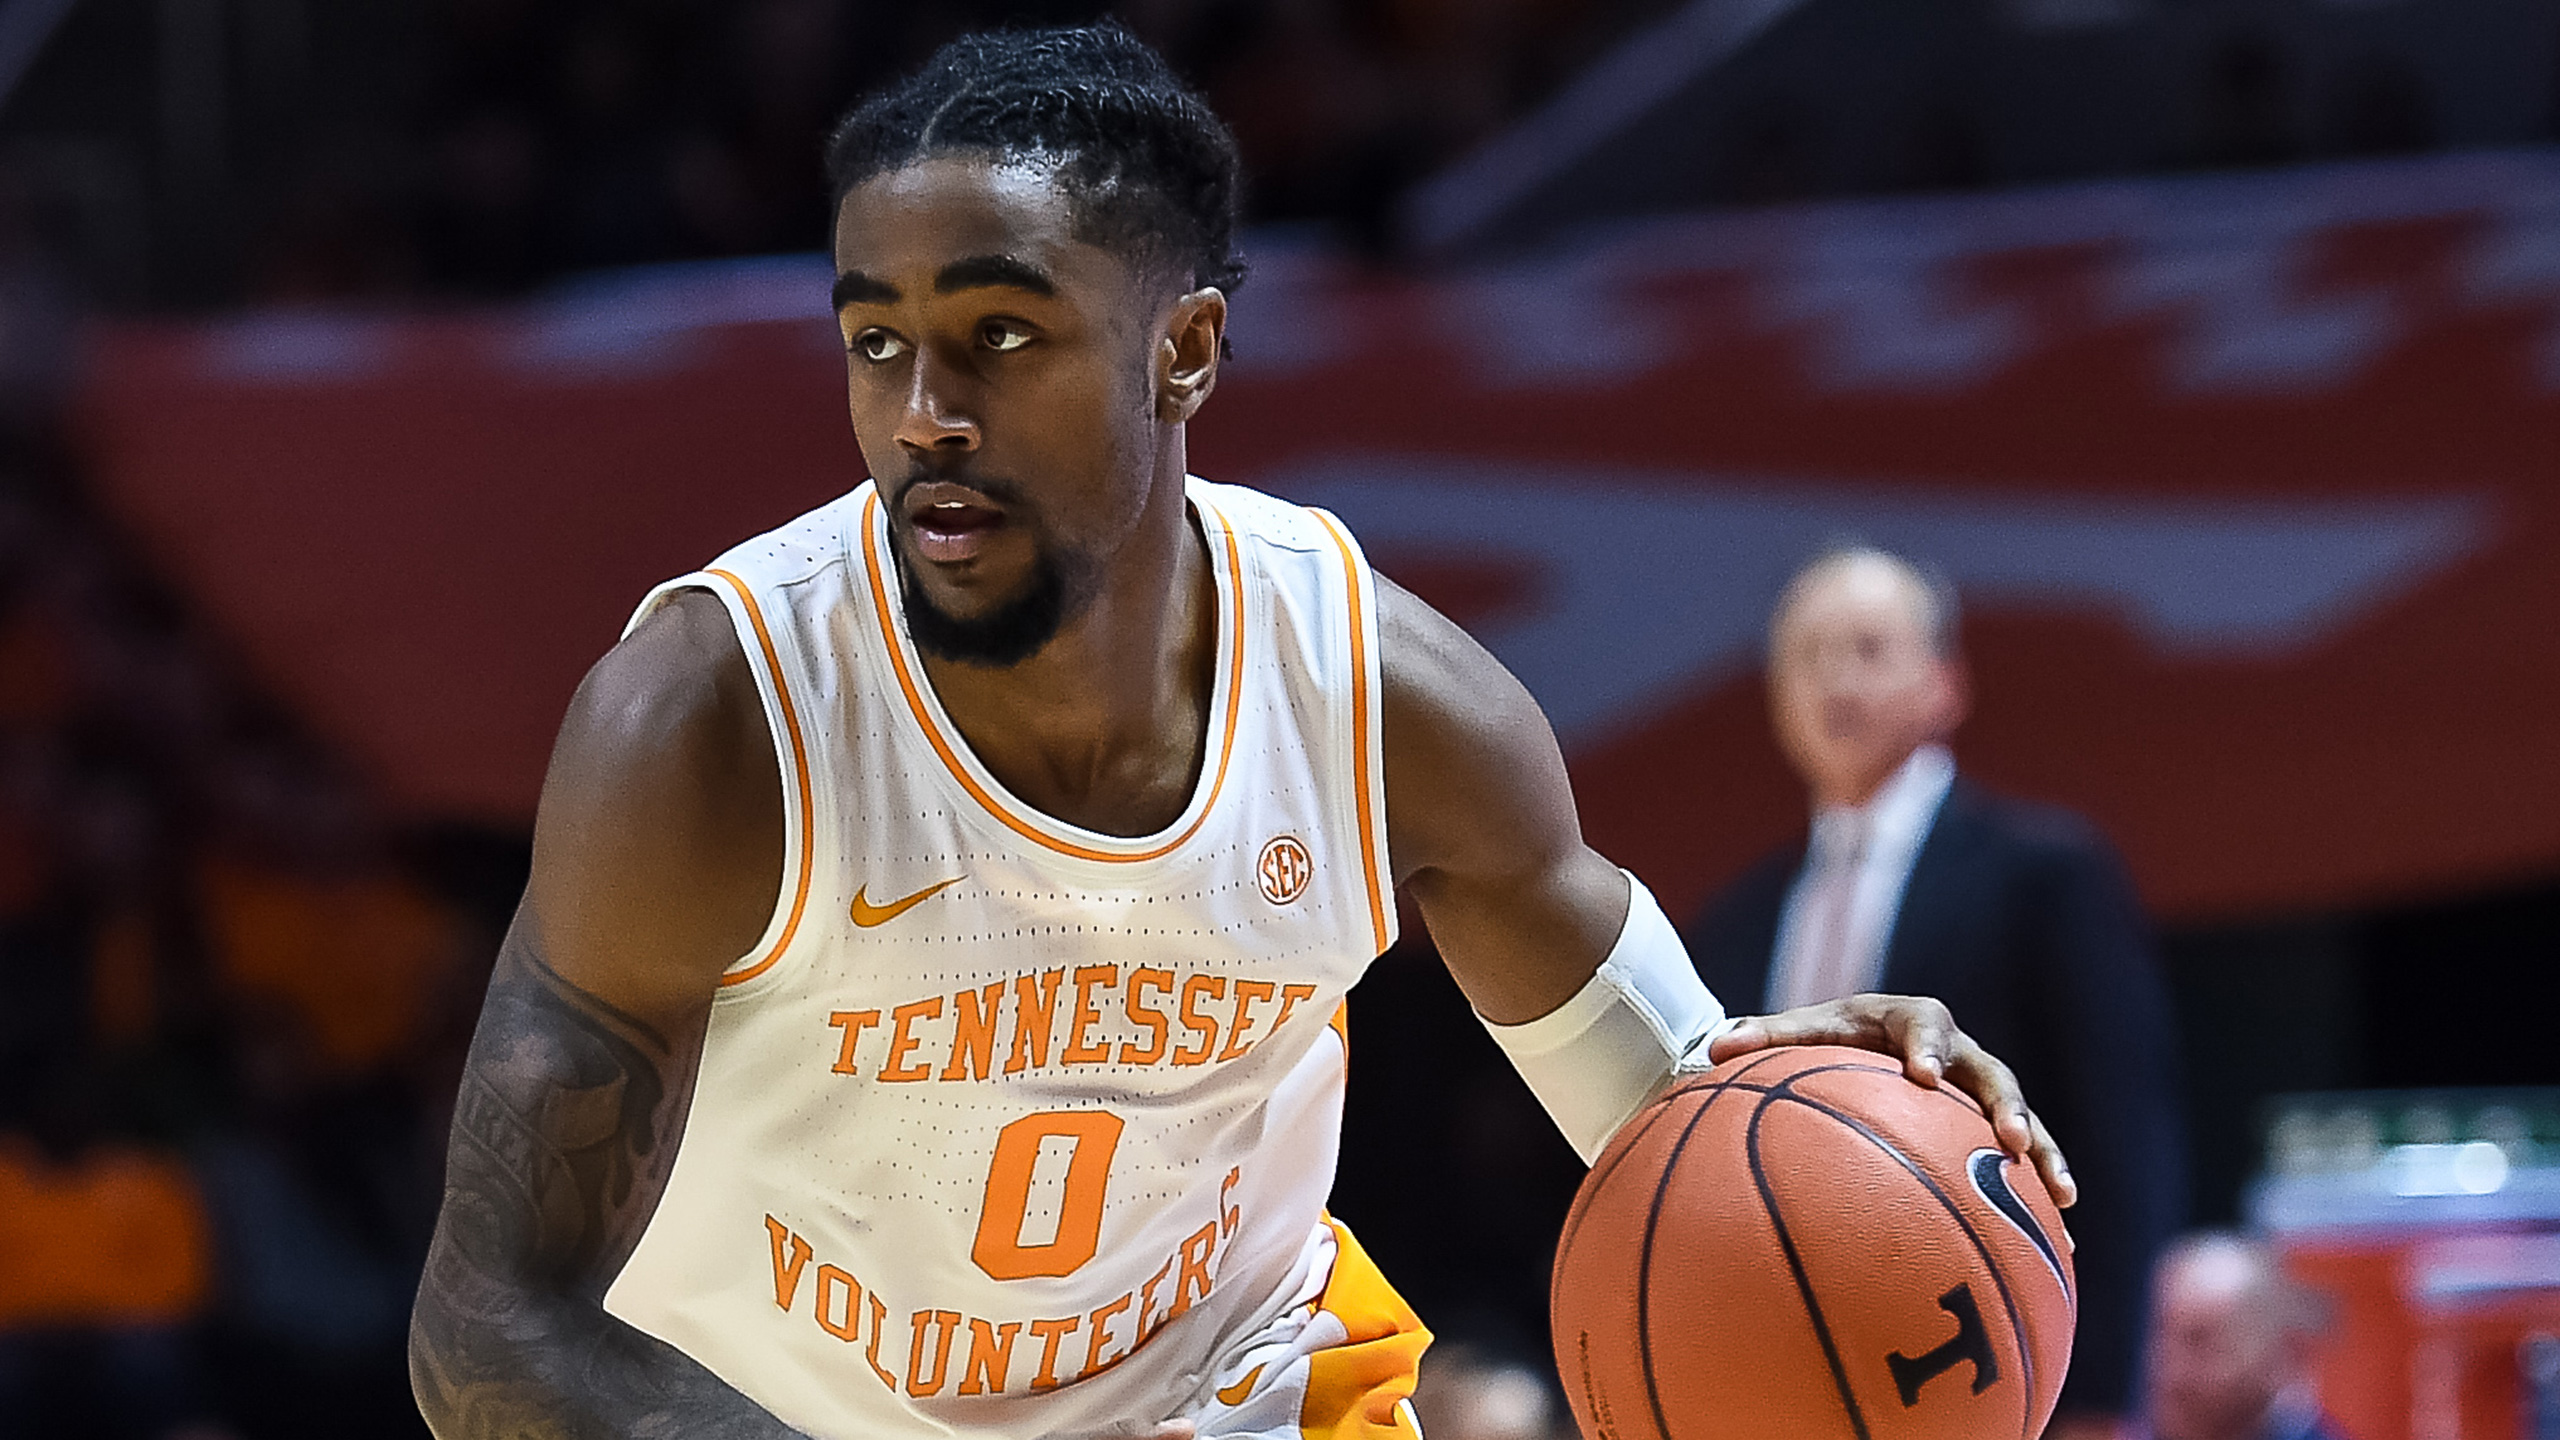 #1 Tennessee vs. Vanderbilt (M Basketball)